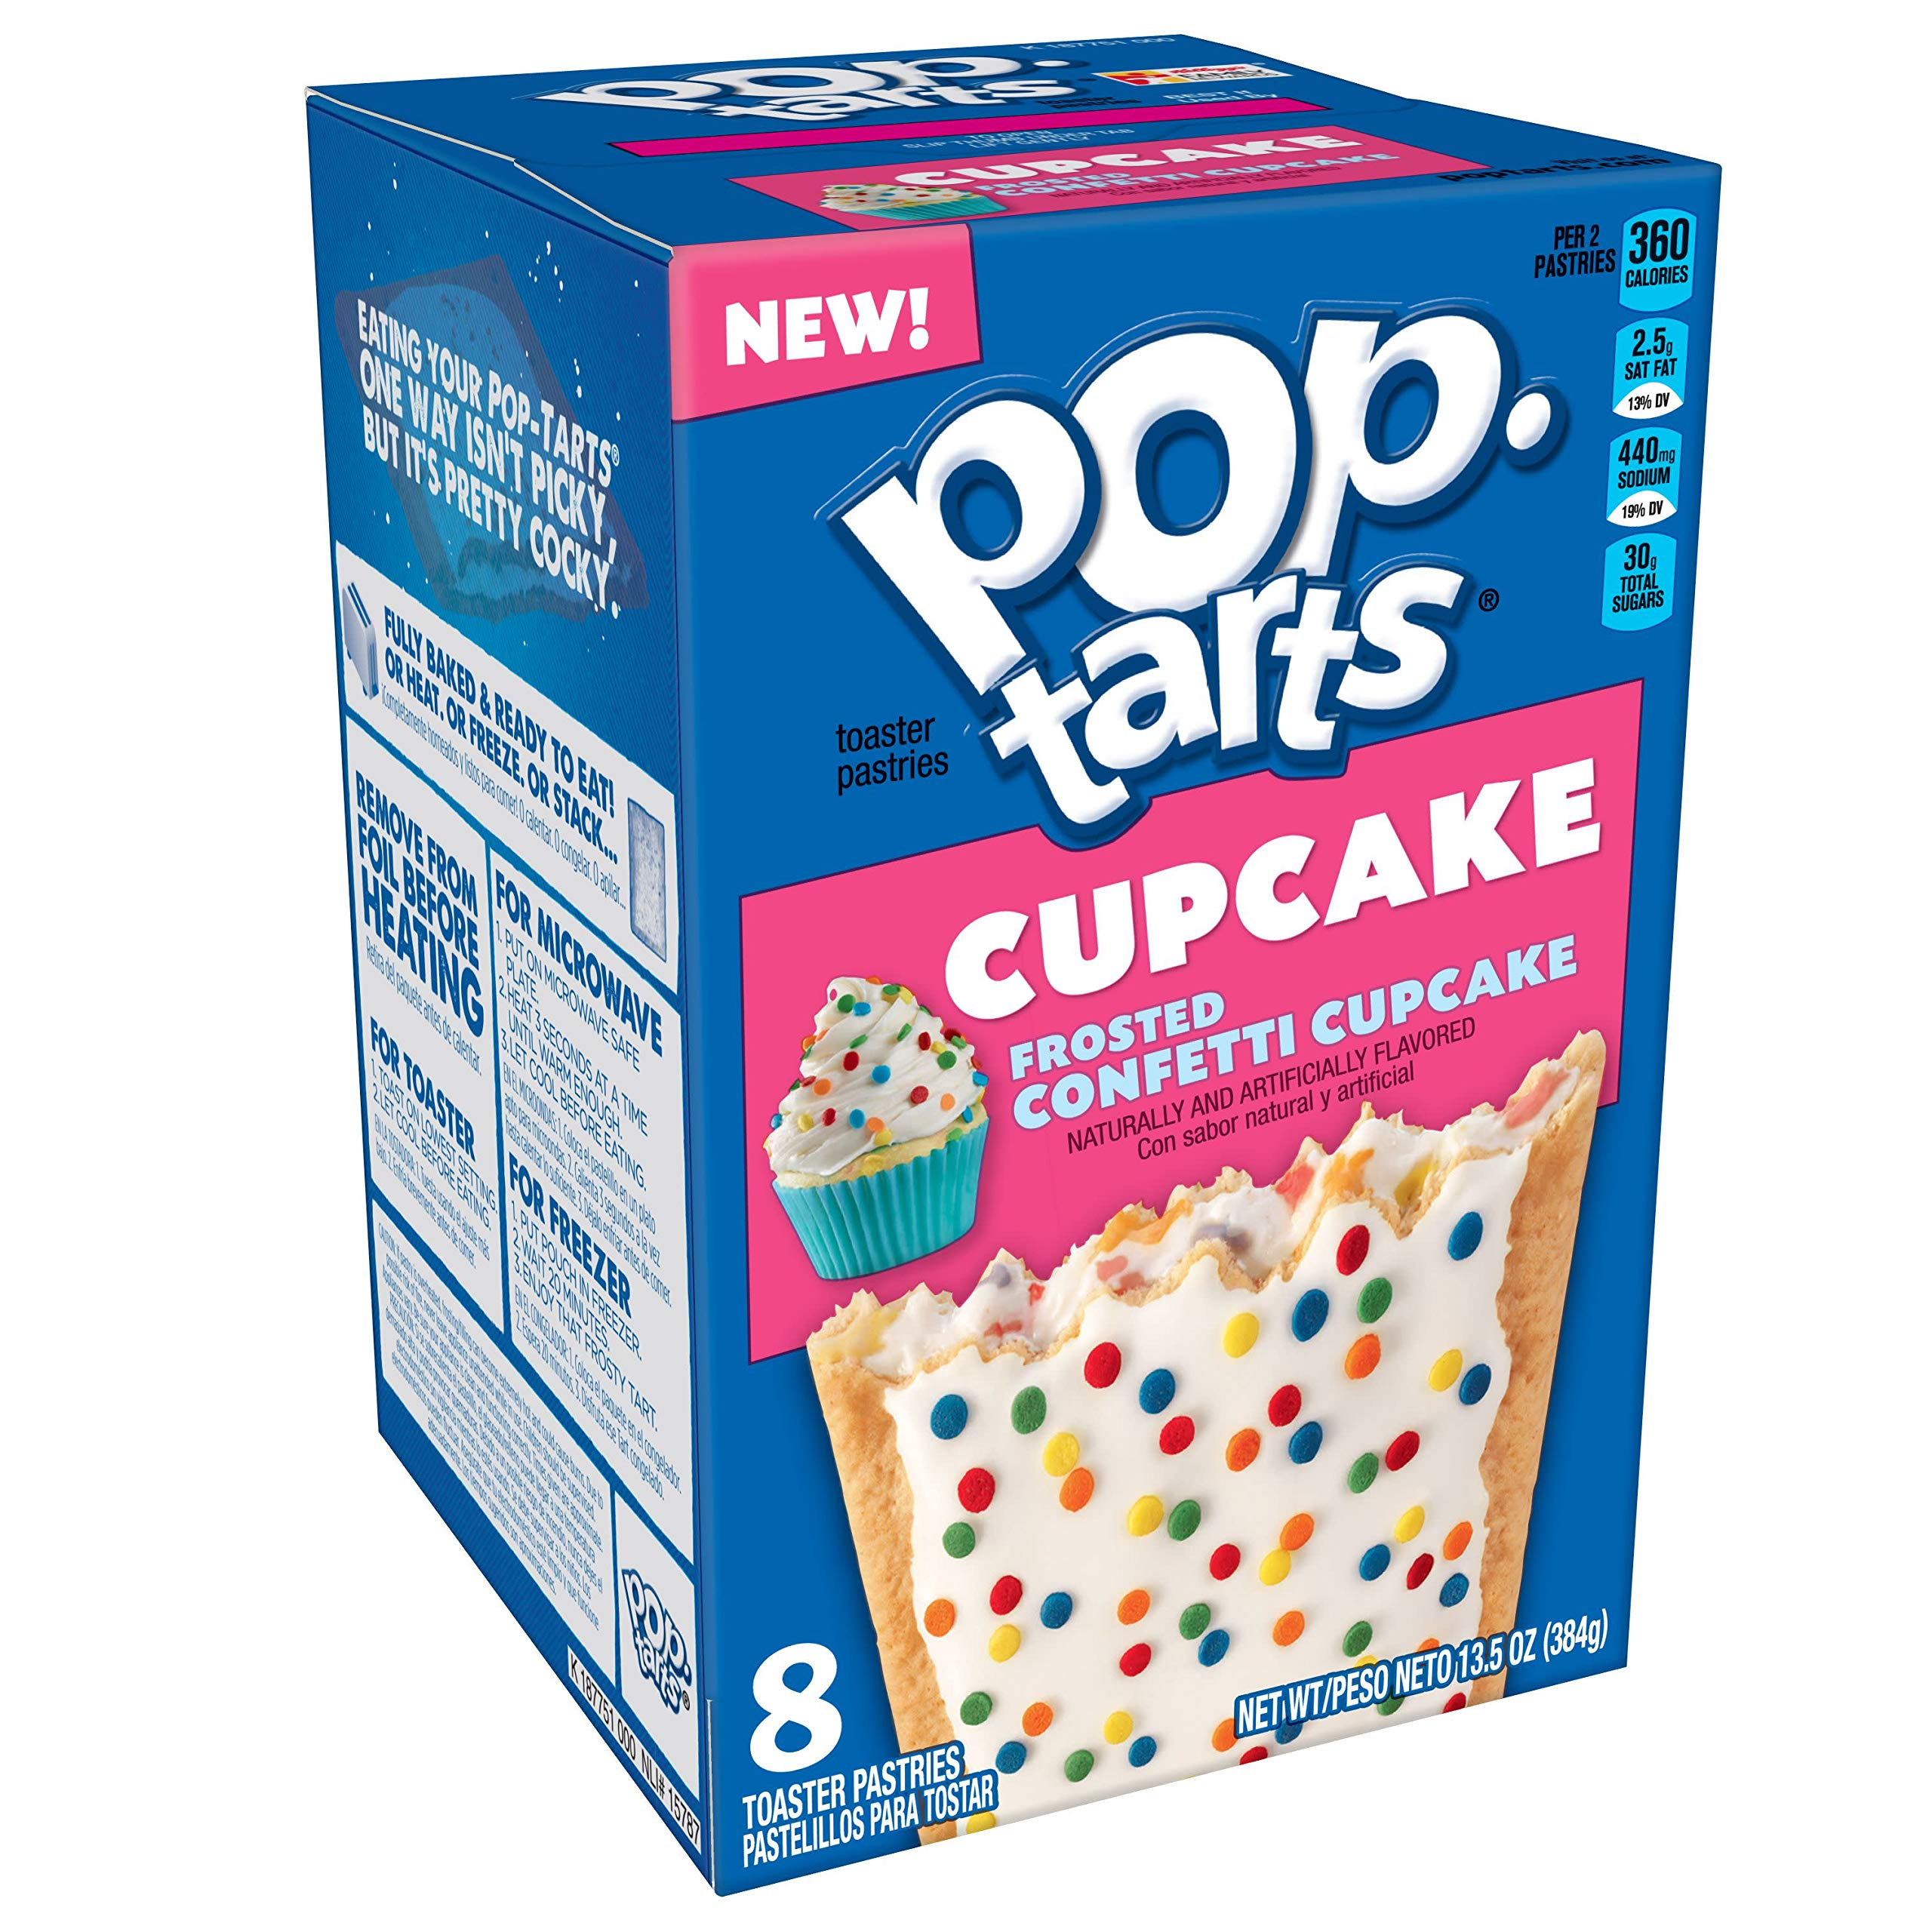 Pop-Tarts Confetti Cupcake, Toaster Pastries, 13.5 oz by Pop-Tarts (Image #1)